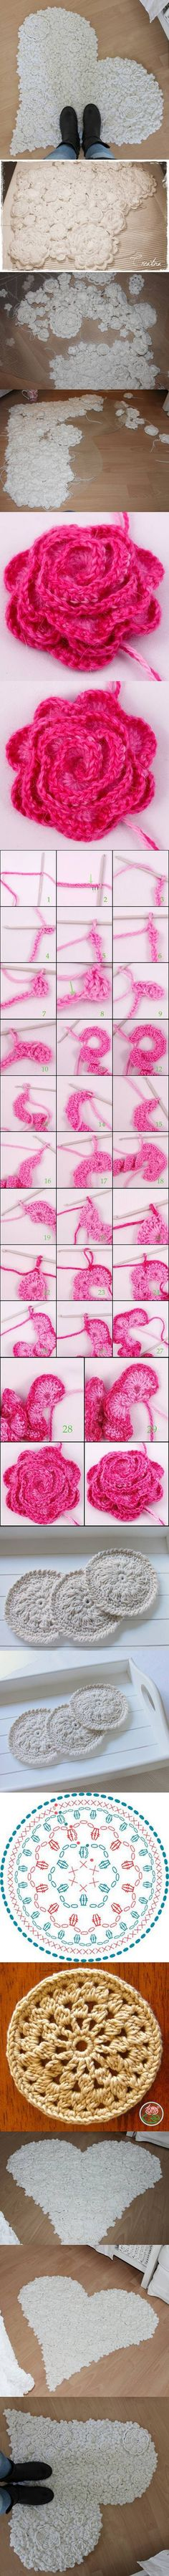 diy chic, craft, chic rug, crocheted flowers, heart shapes, crochet rugs, pink rose, diy projects, diy rugs